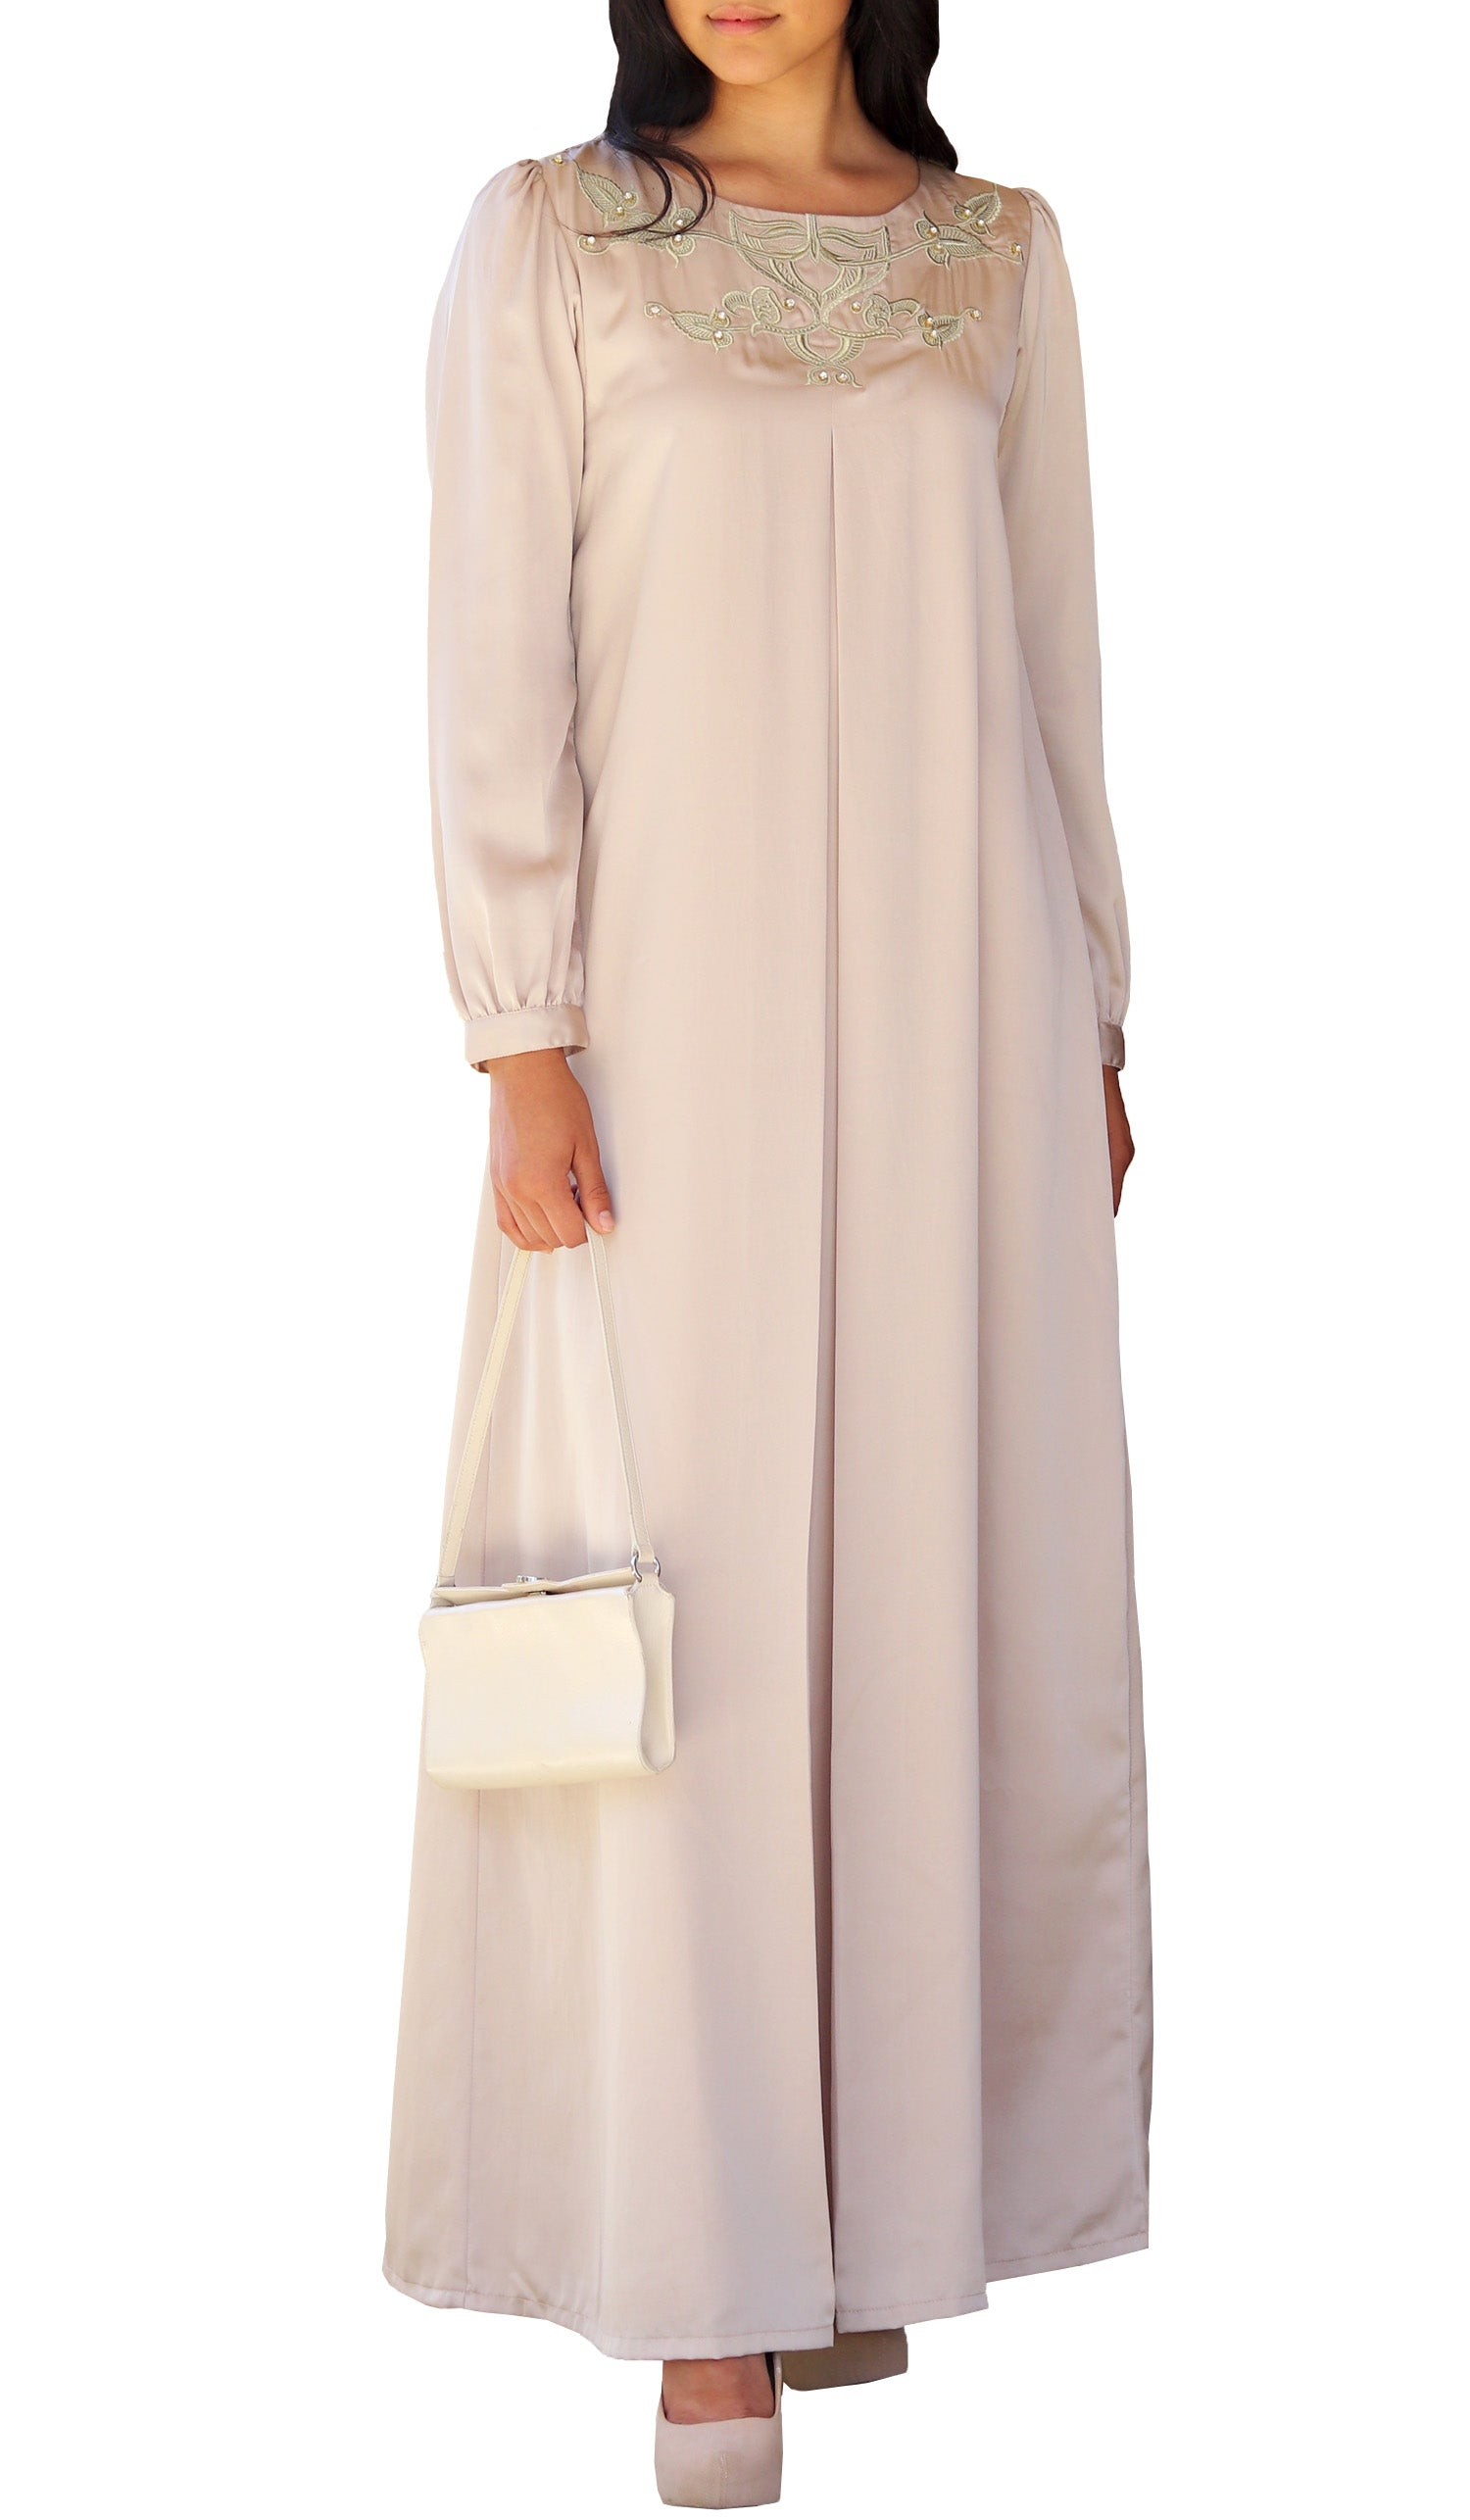 Jasmin Embroidered Formal Long Sleeve Modest Evening Dress - Beige Gold